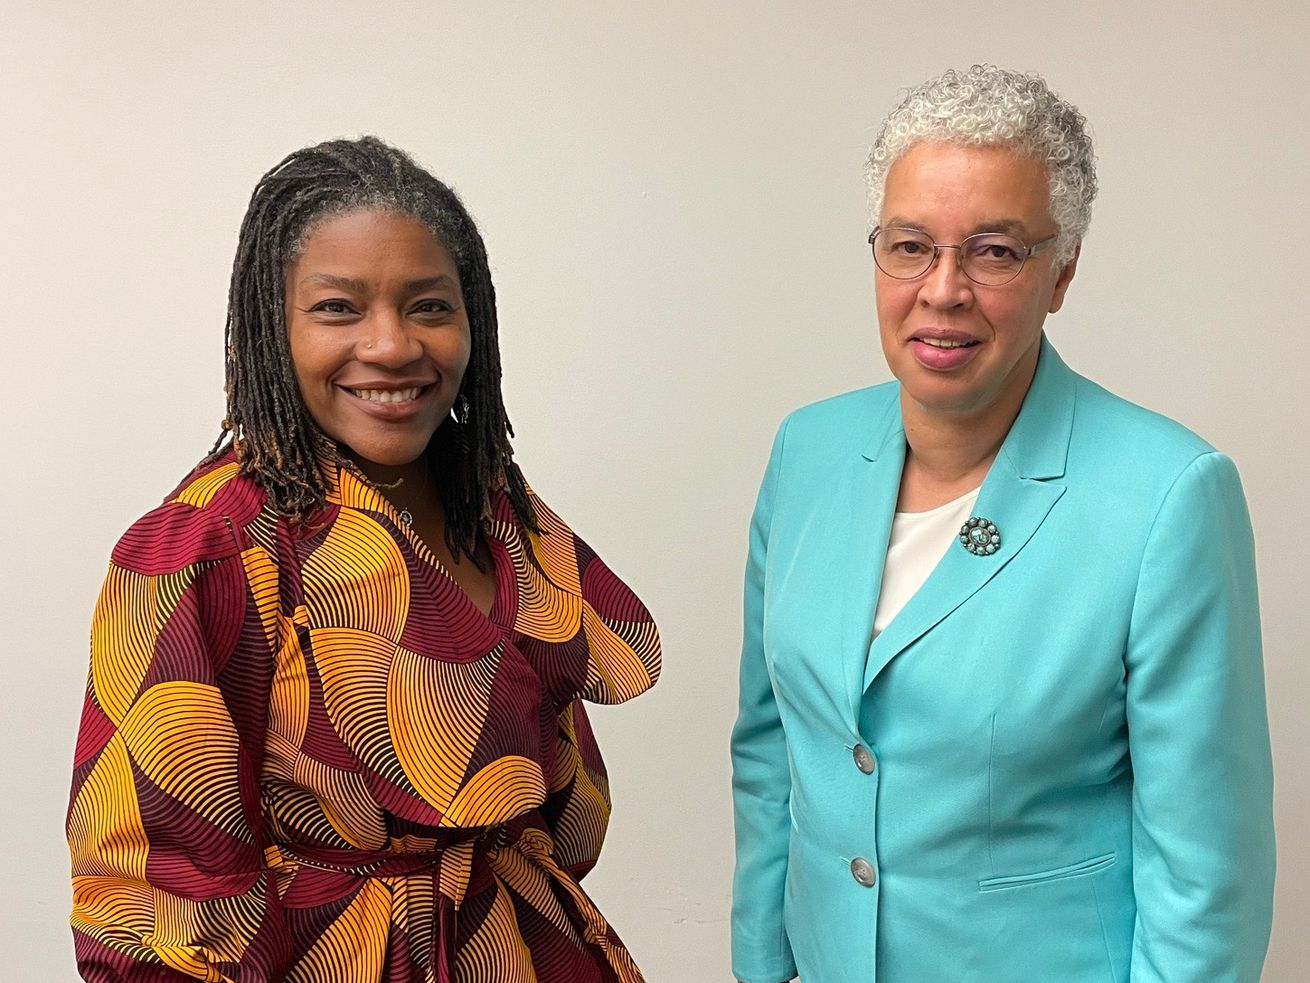 Cook County will unveil a new Racial Equity Action Plan Monday, as County Board President Toni Preckwinkle (r) kicks off the county's 3rd Annual Racial Equity Week, taking place Sept. 13-17. She and Director of Equity and Inclusion Denise Barreto sat down with the Chicago Sun-Times to talk race, equity and racial reckoning in a post-George Floyd America.